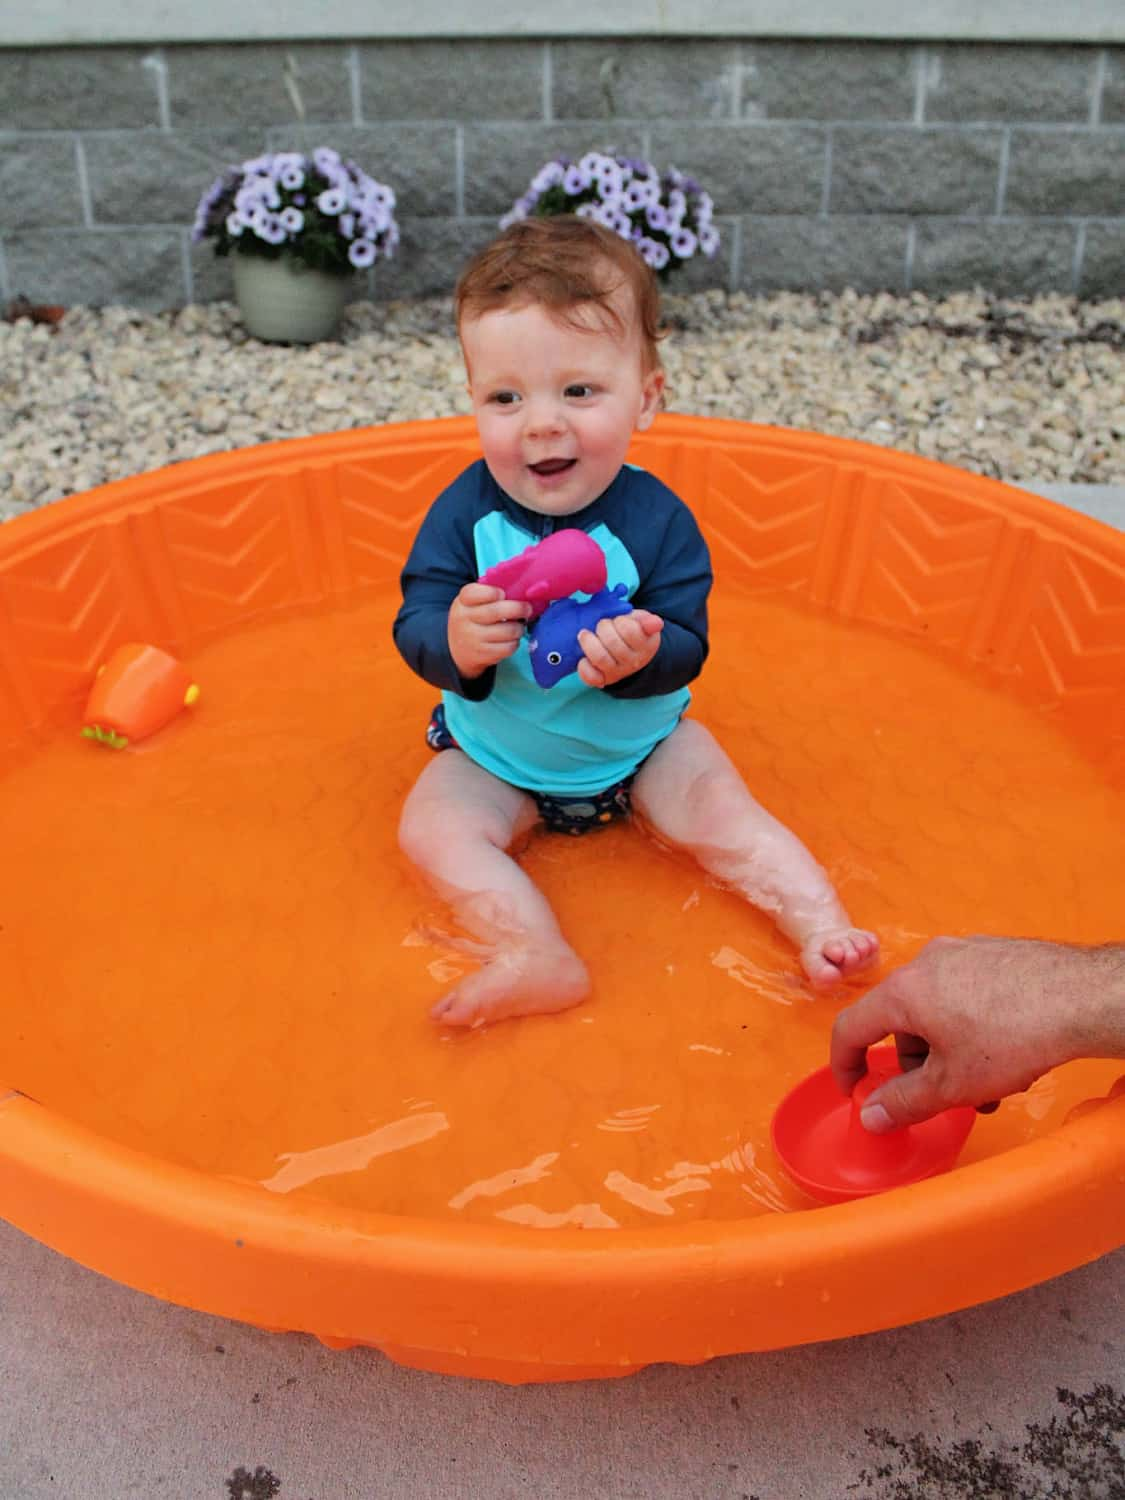 Green Sprouts Baby in pool